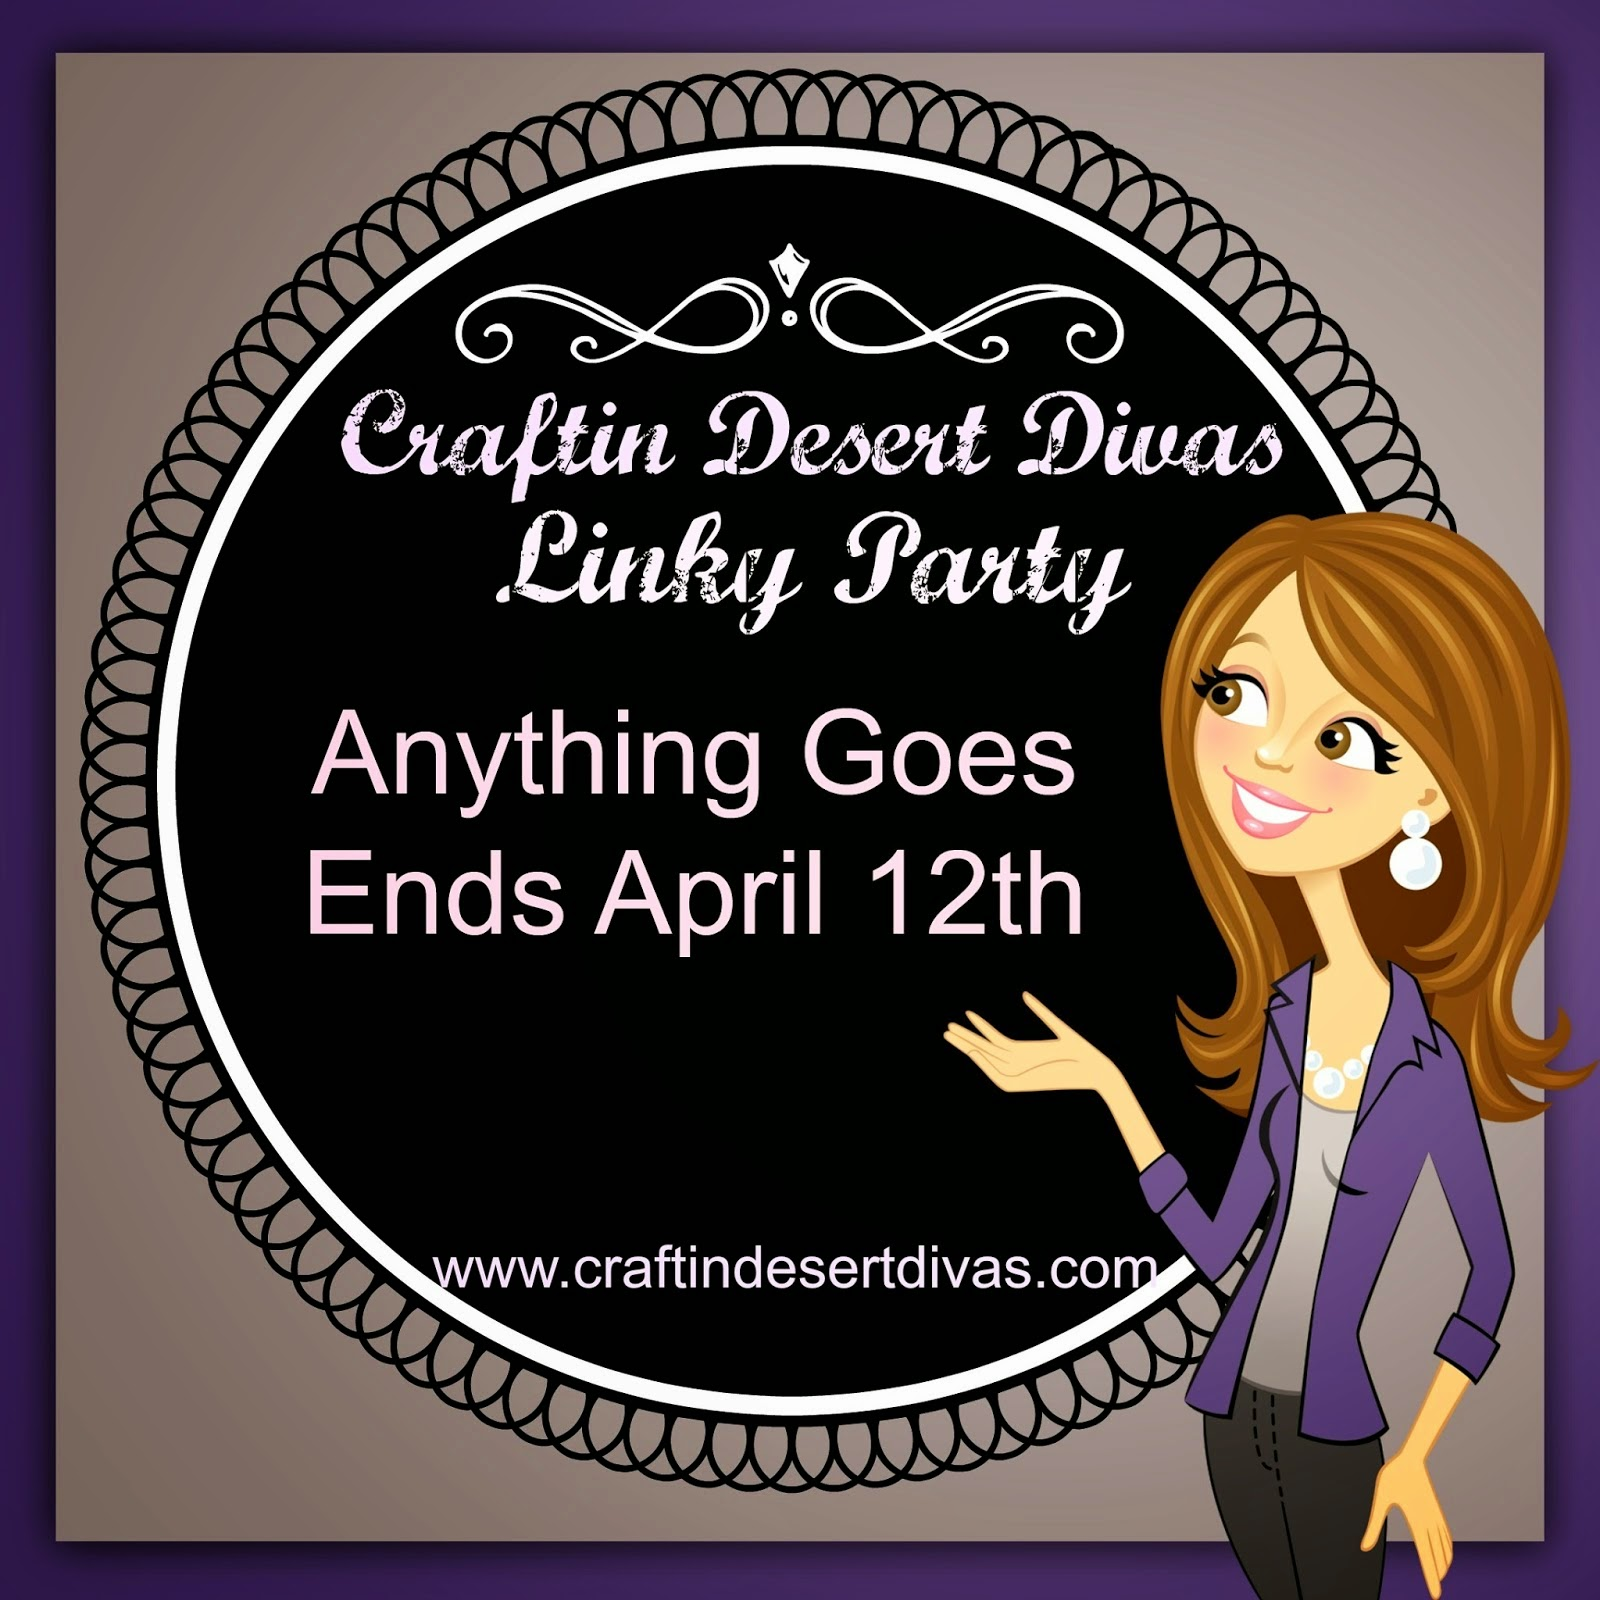 http://www.craftindesertdivas.com/2015/04/craft-it-up-link-it-up-anything-goes.html